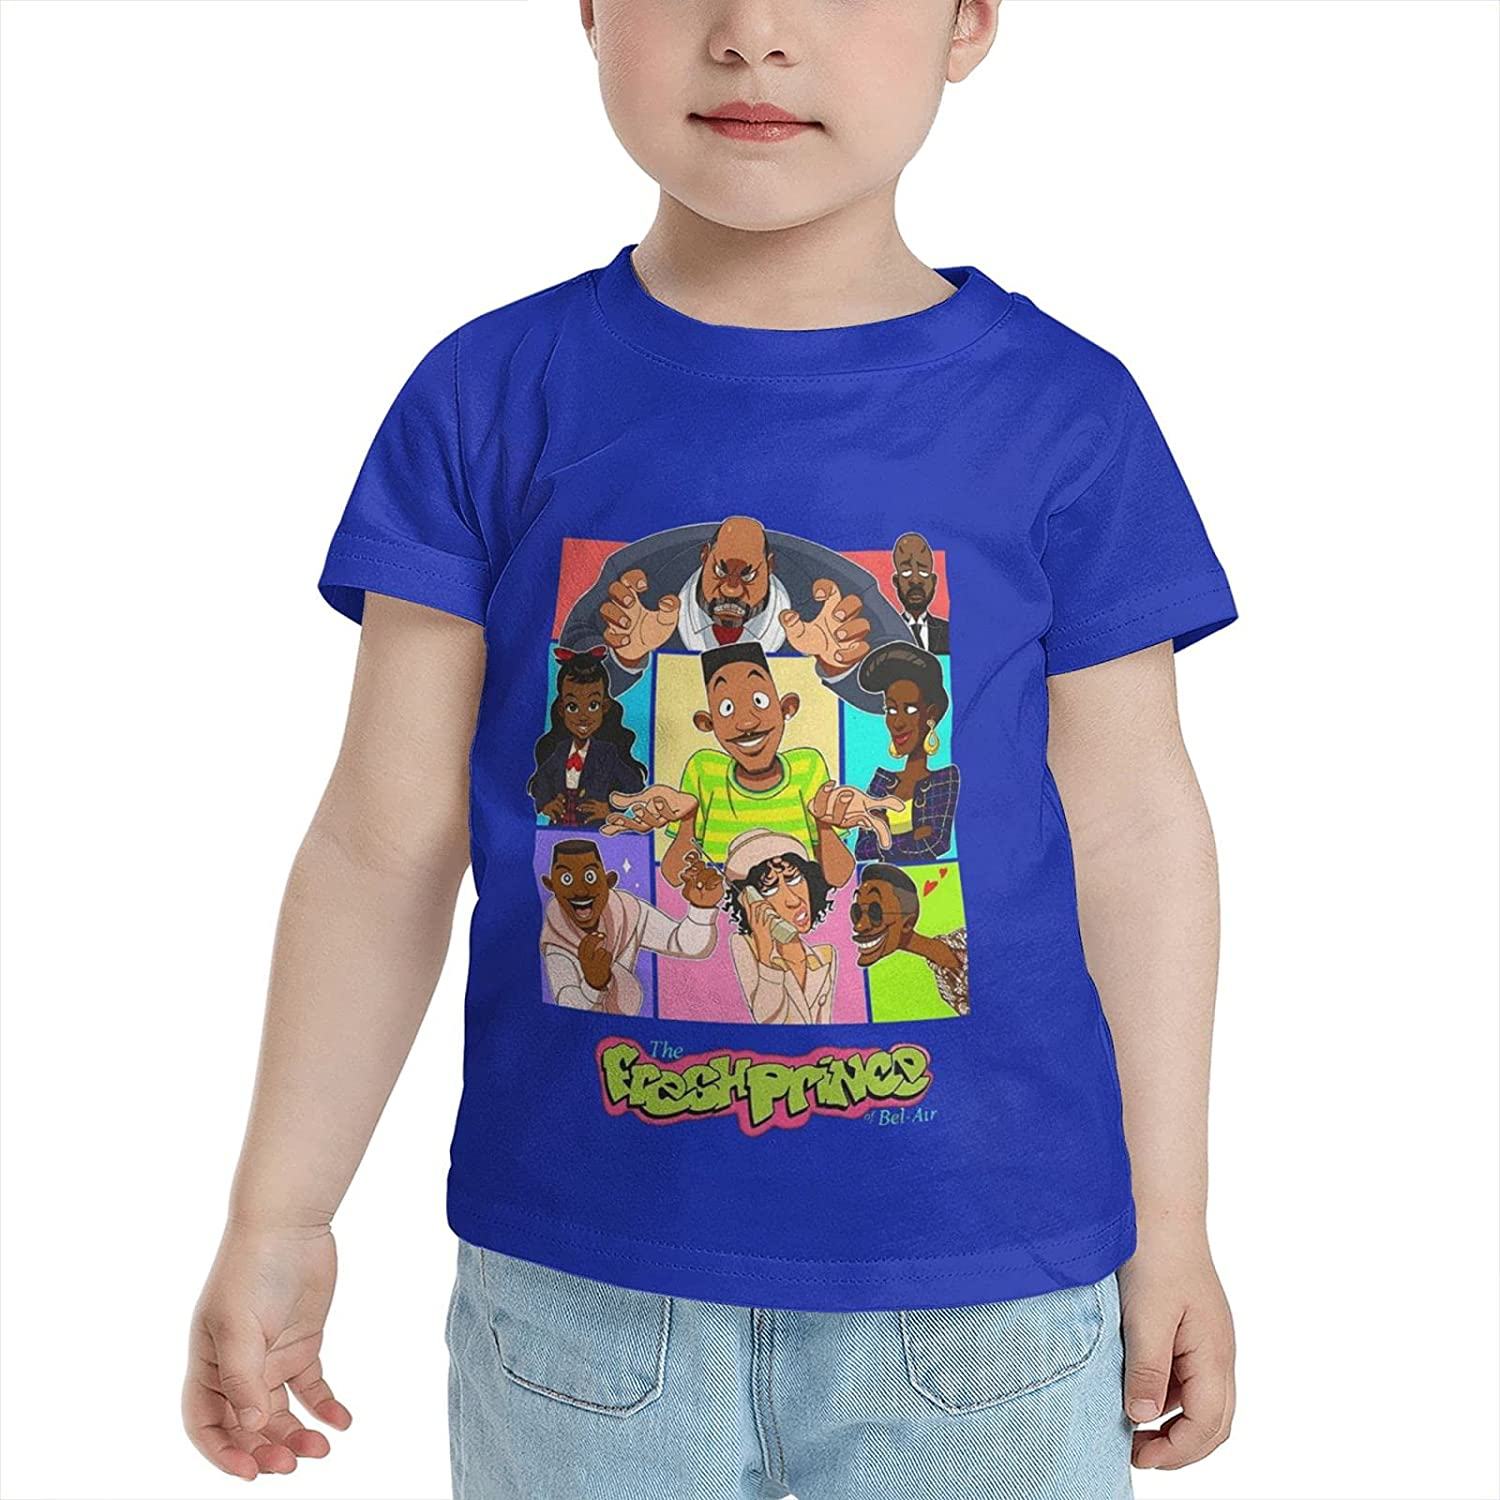 GONGQI Boys and Girls The Fresh Prince of Bel Air Ultra Soft Cotton Short Sleeve Shirt Child Casual Tee for 2-6 Years